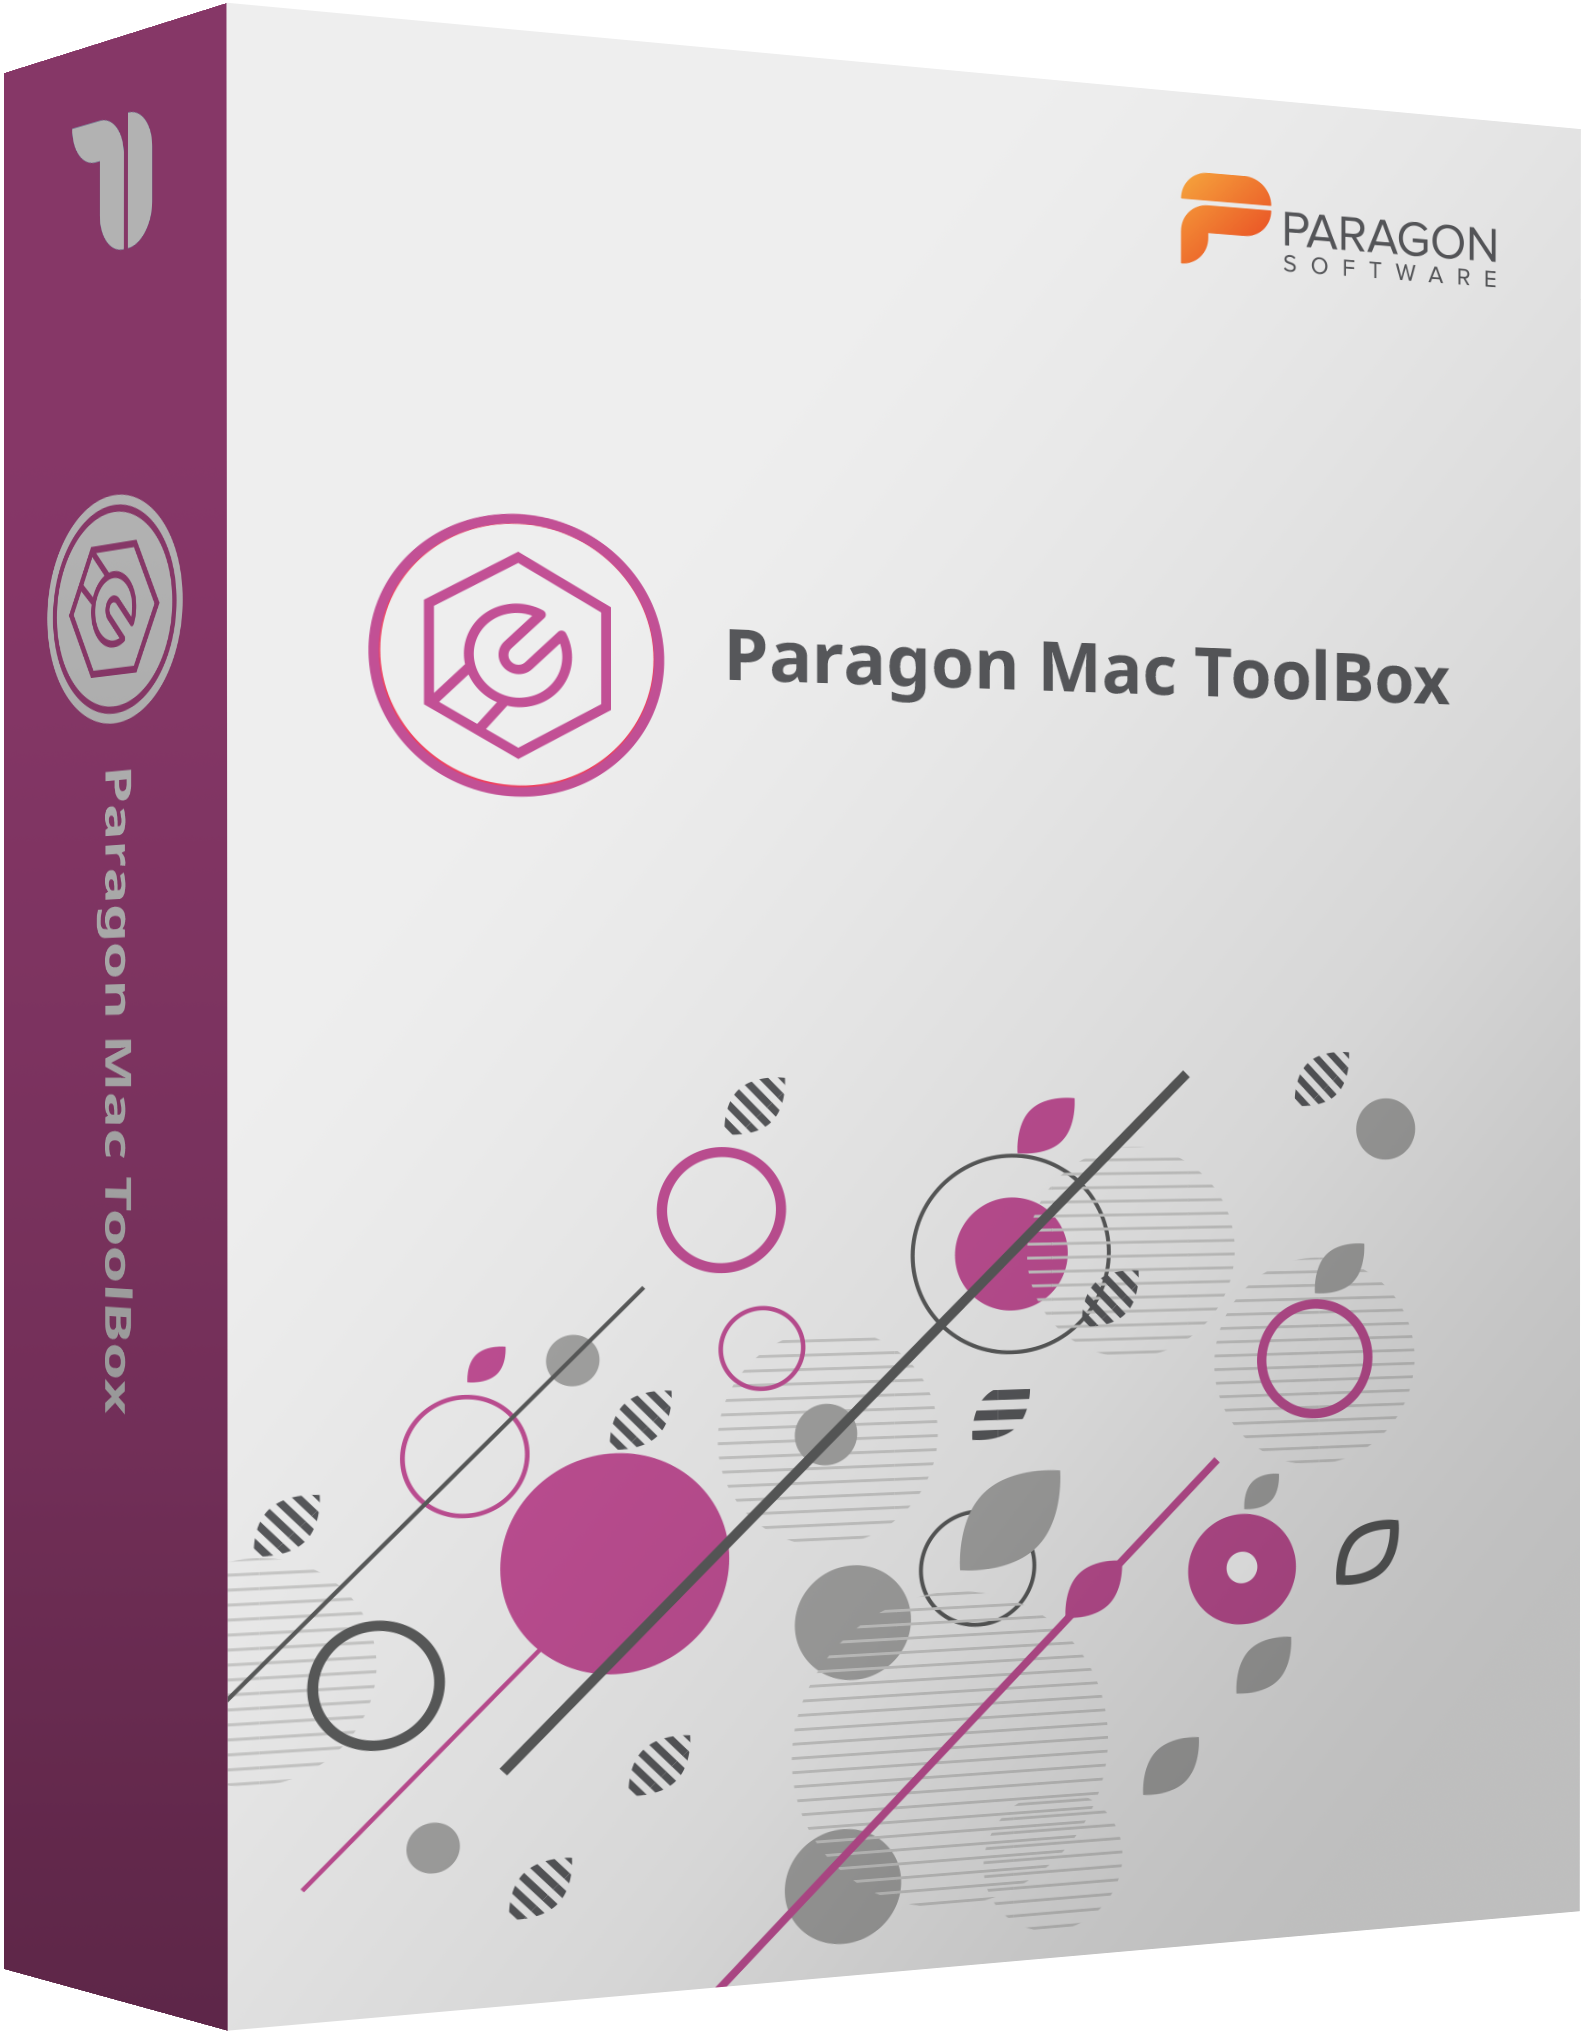 Paragon_Mac_ToolBox